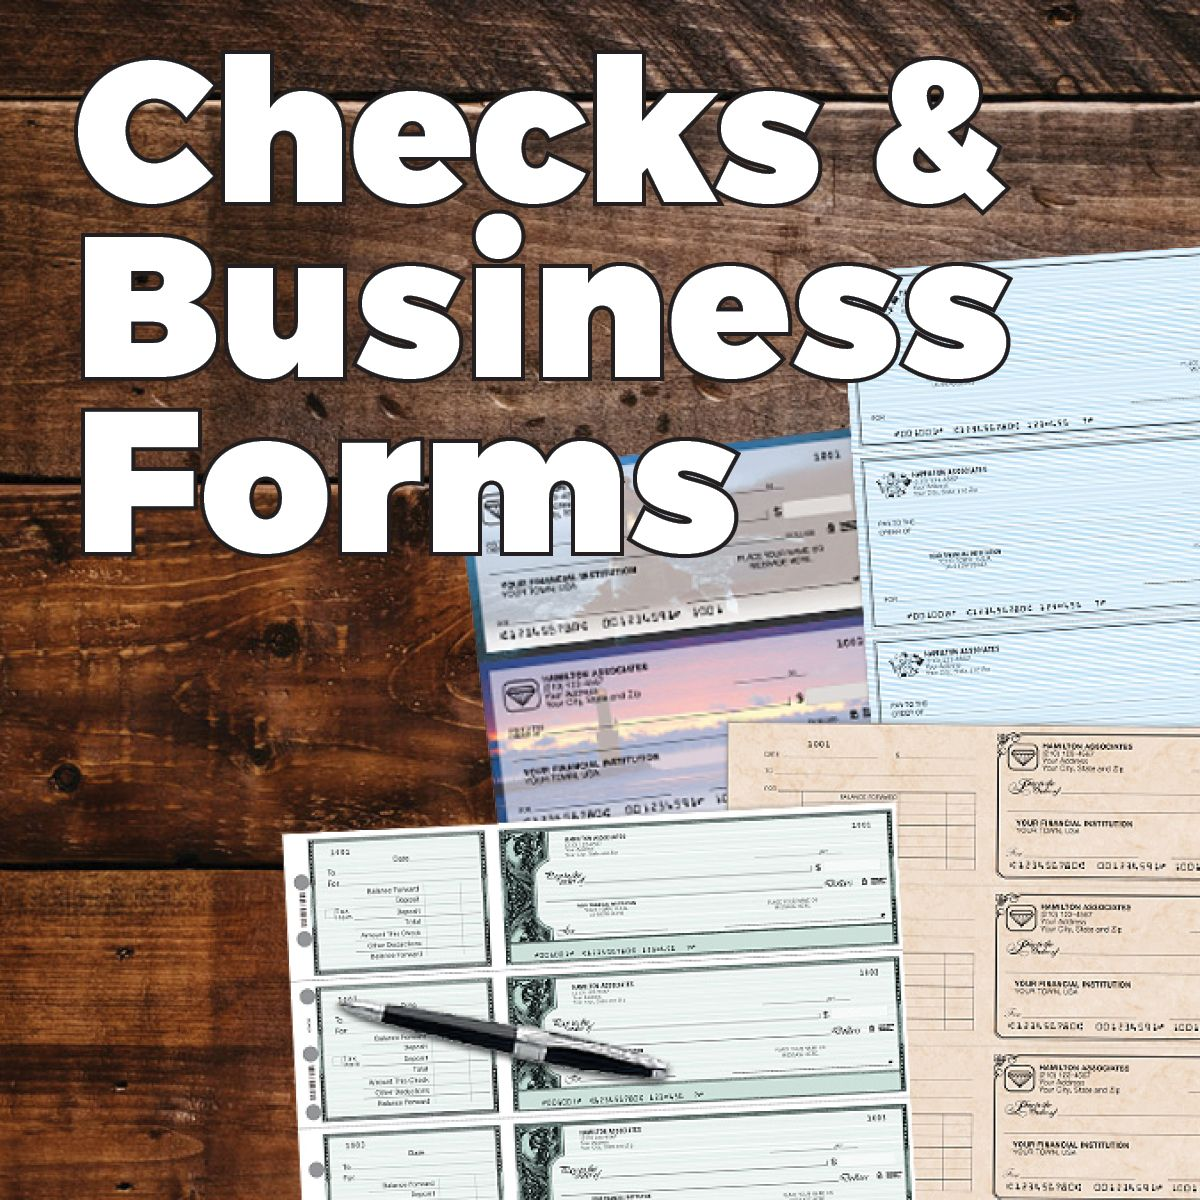 Checks & Business Forms